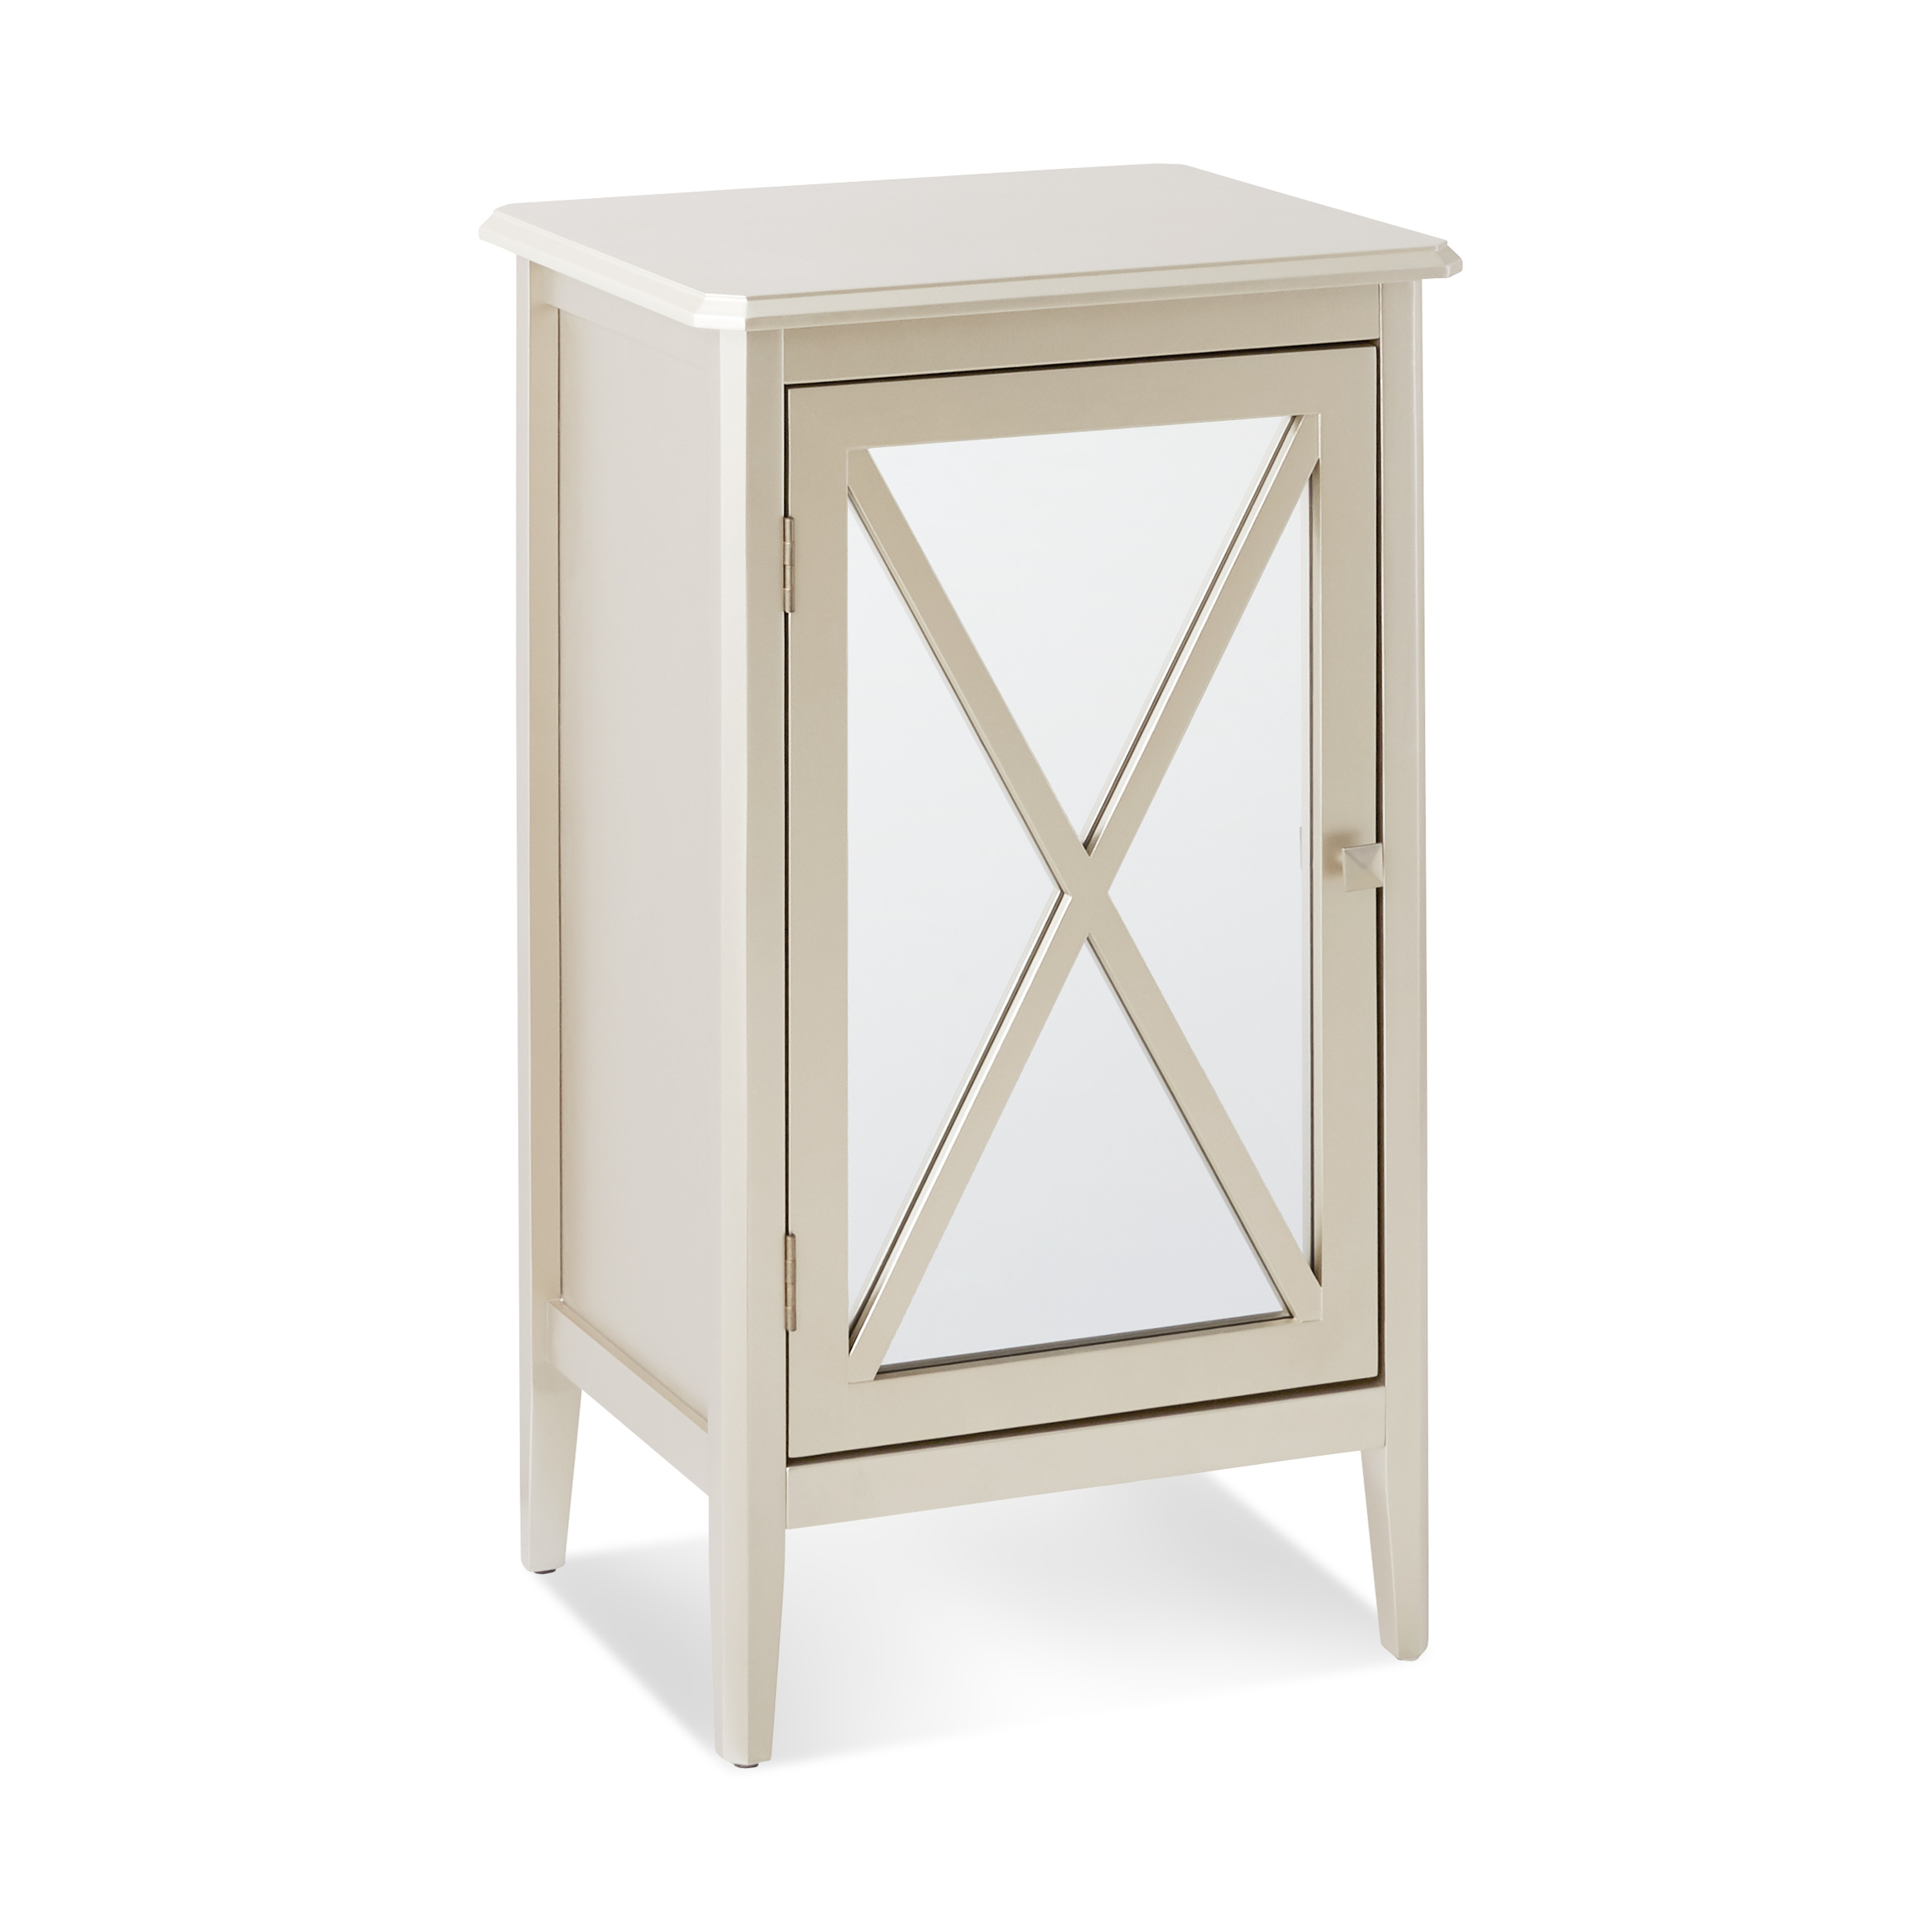 Details About Accent Mirrored Cabinet Small Space Compact Storage End Table  Night Stand Mirror